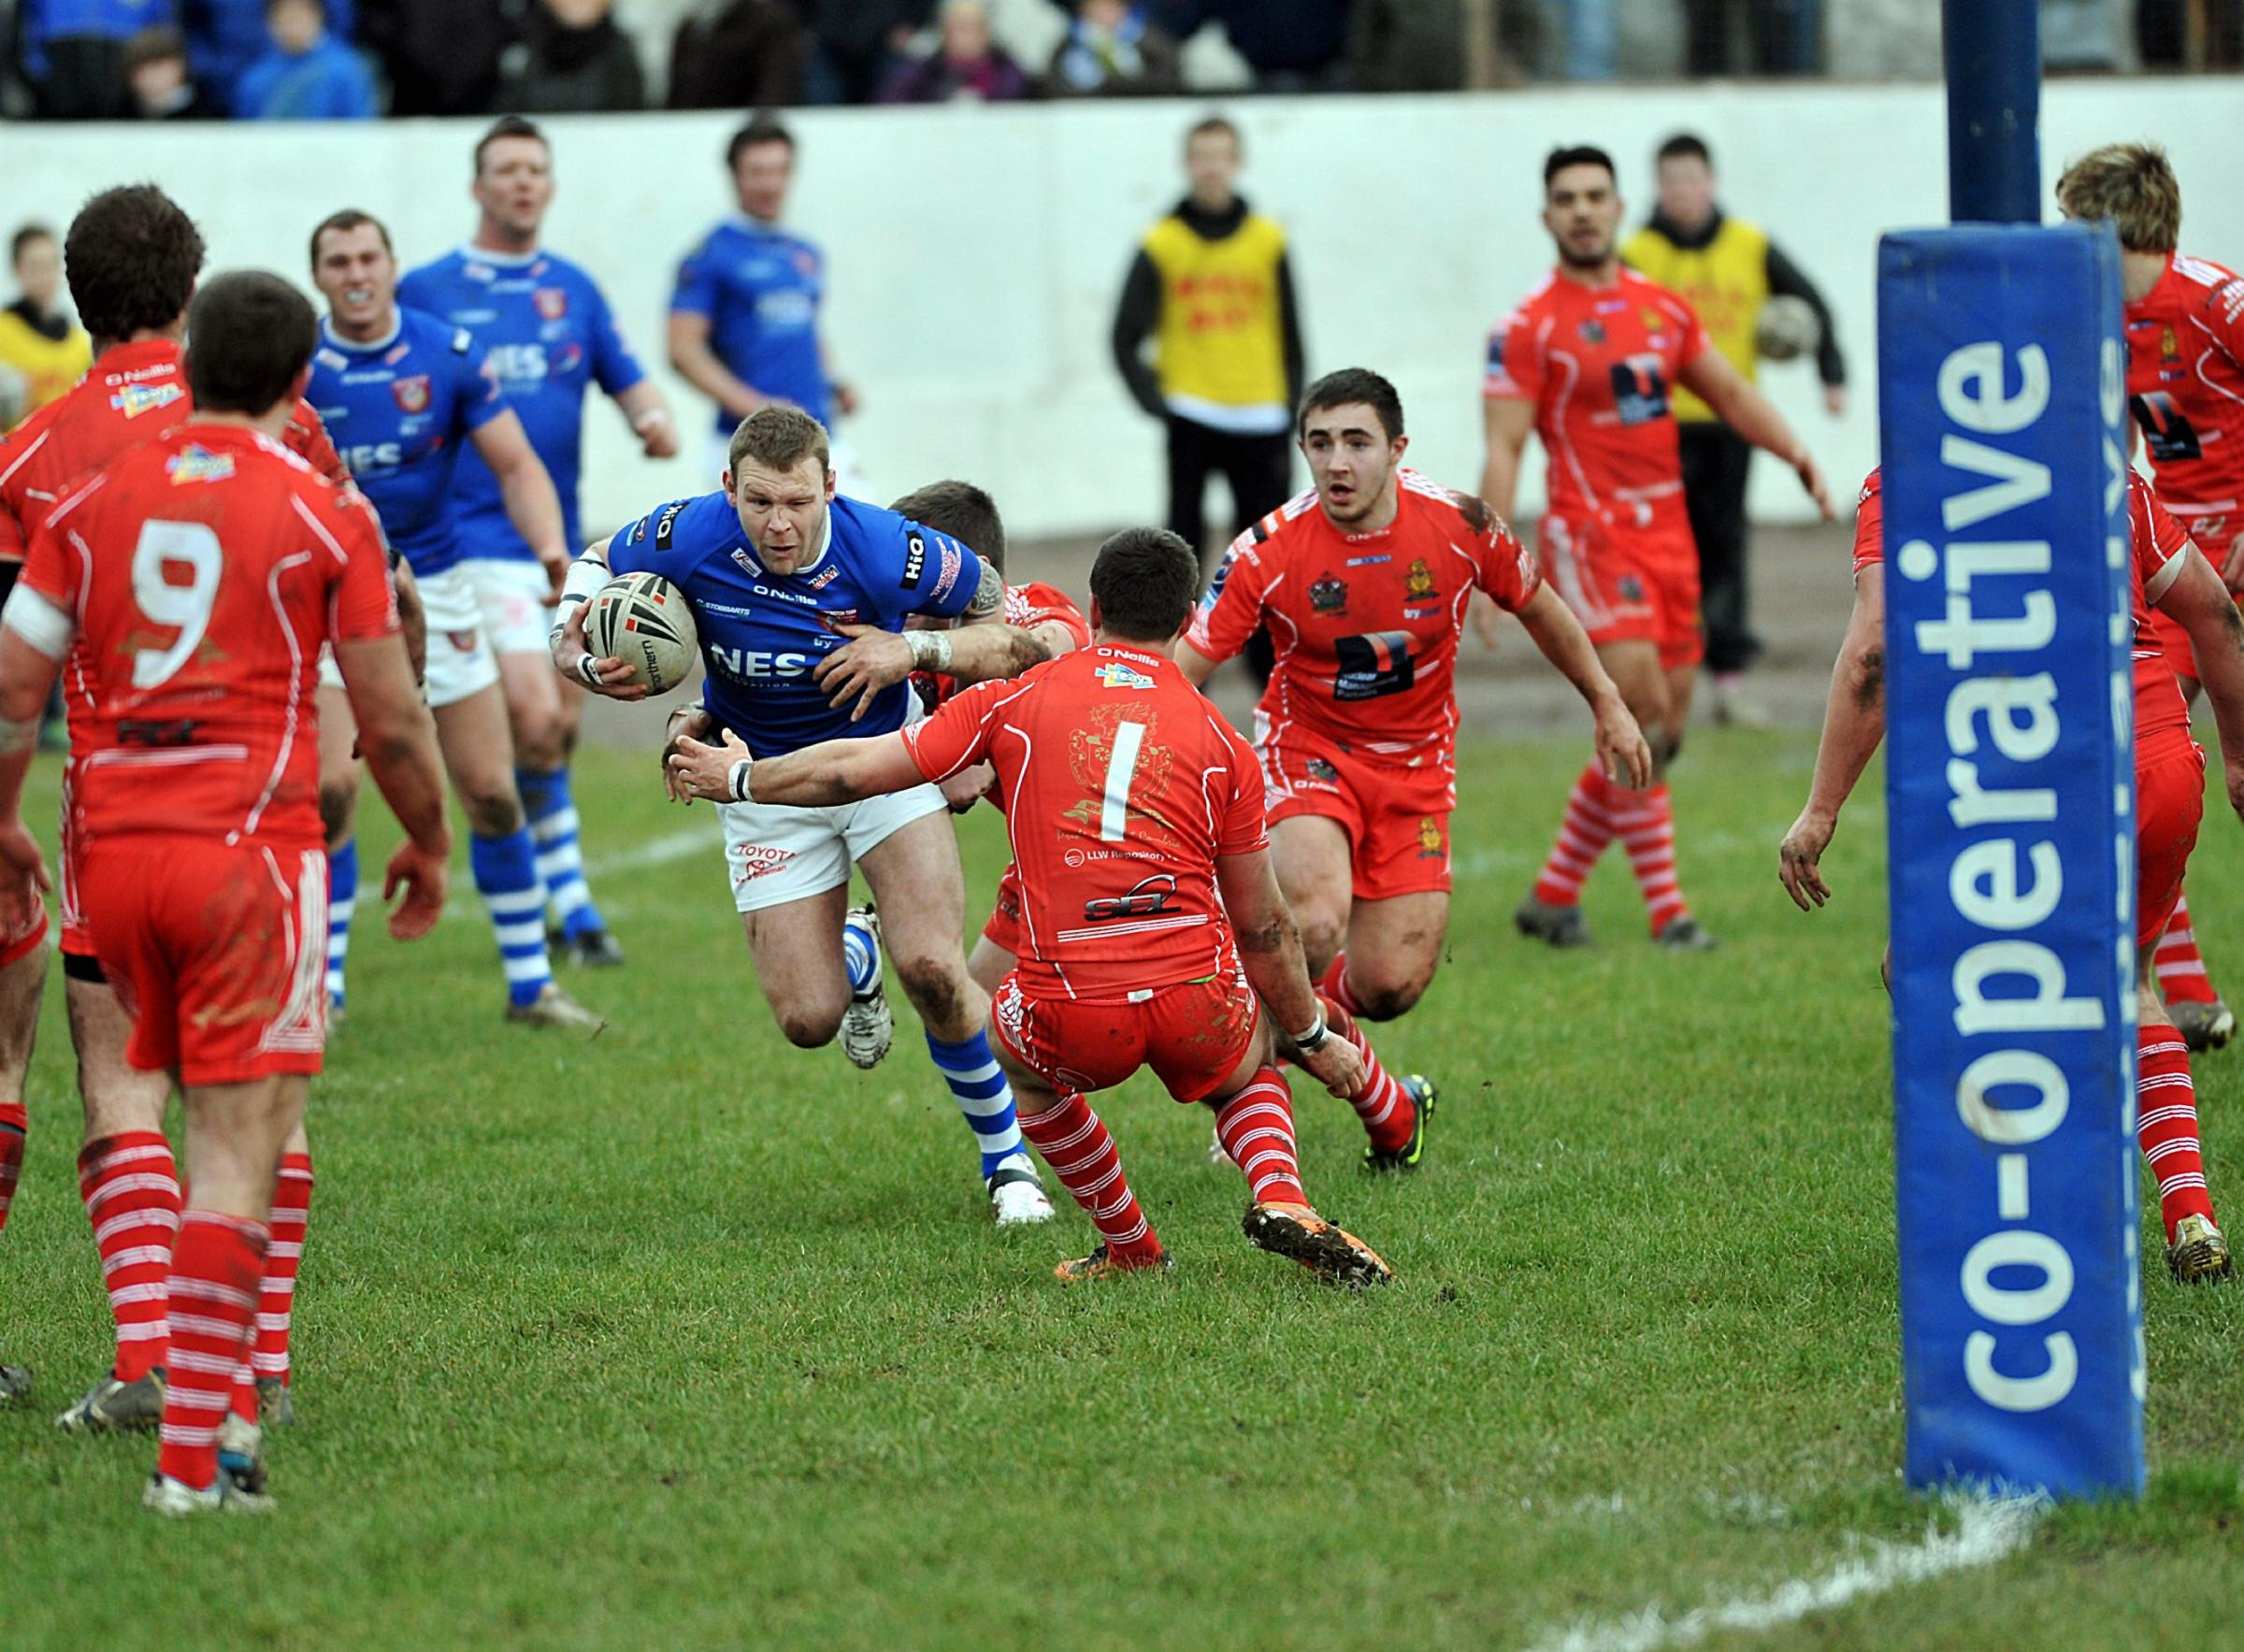 CUMBRIA RETURN: Jamie Thackray on the charge for Workington Town in 2012                                                  Tom Kay